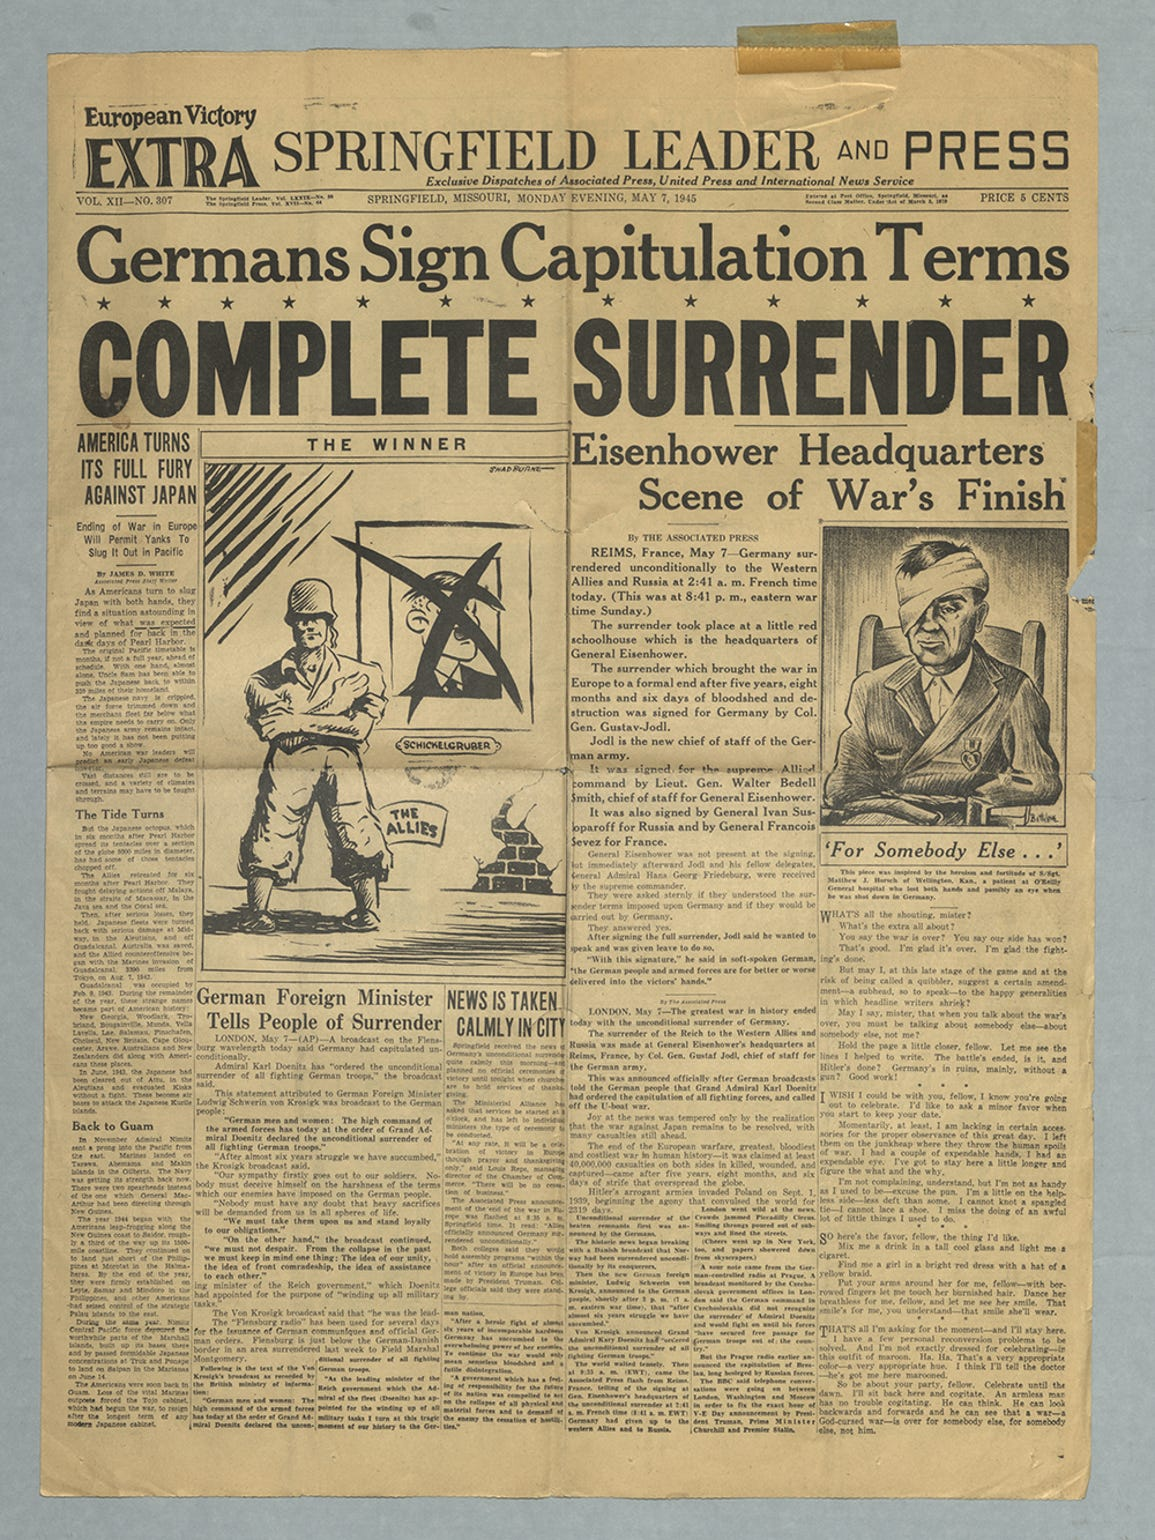 May 7, 1945, edition of the Leader and Press.